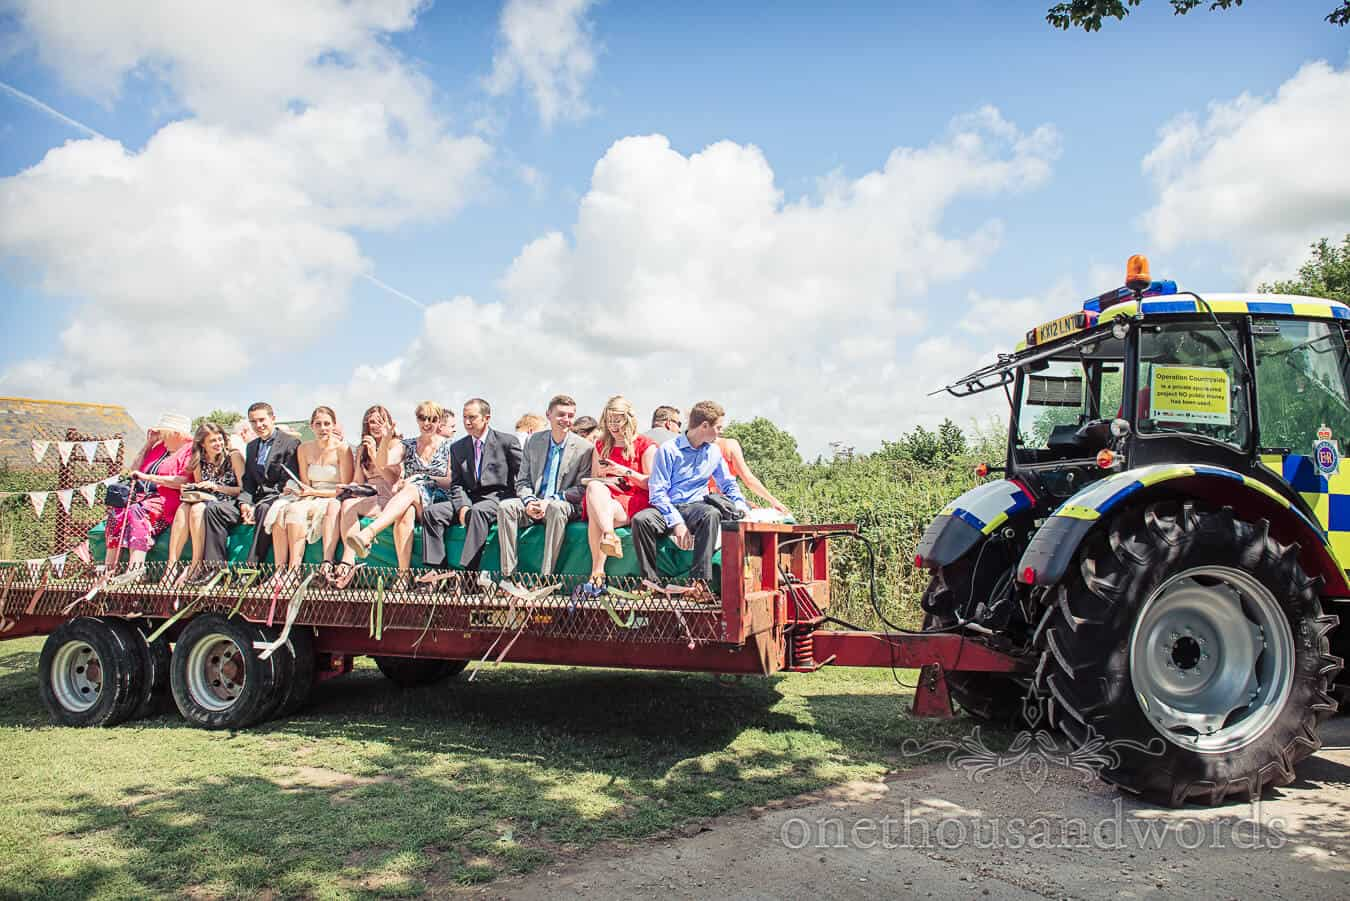 Guests sitting on wedding tractor trailer with police tractor